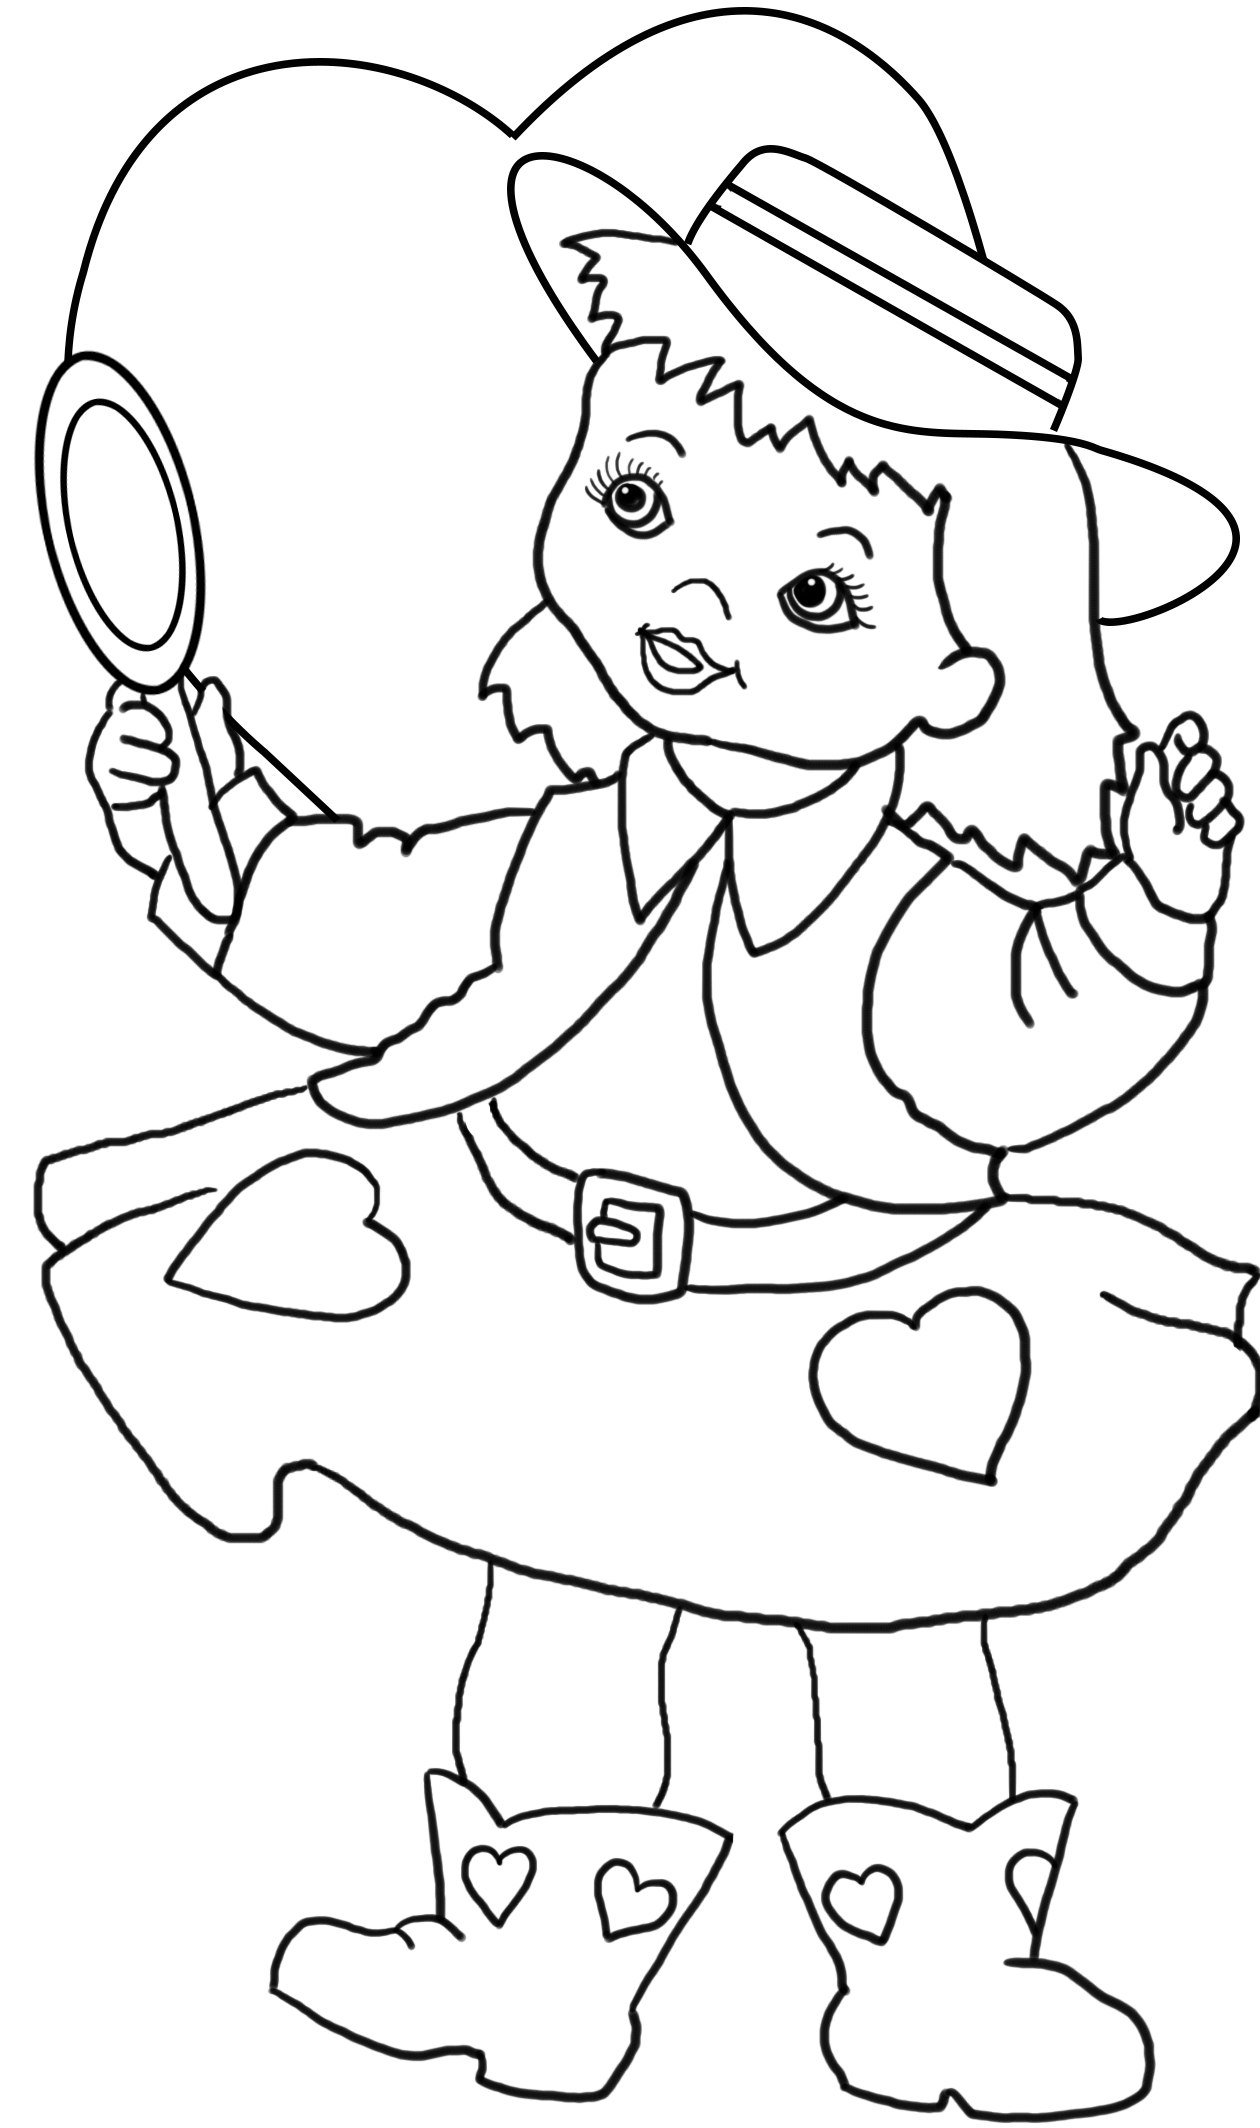 cow-girl with hearts for coloring